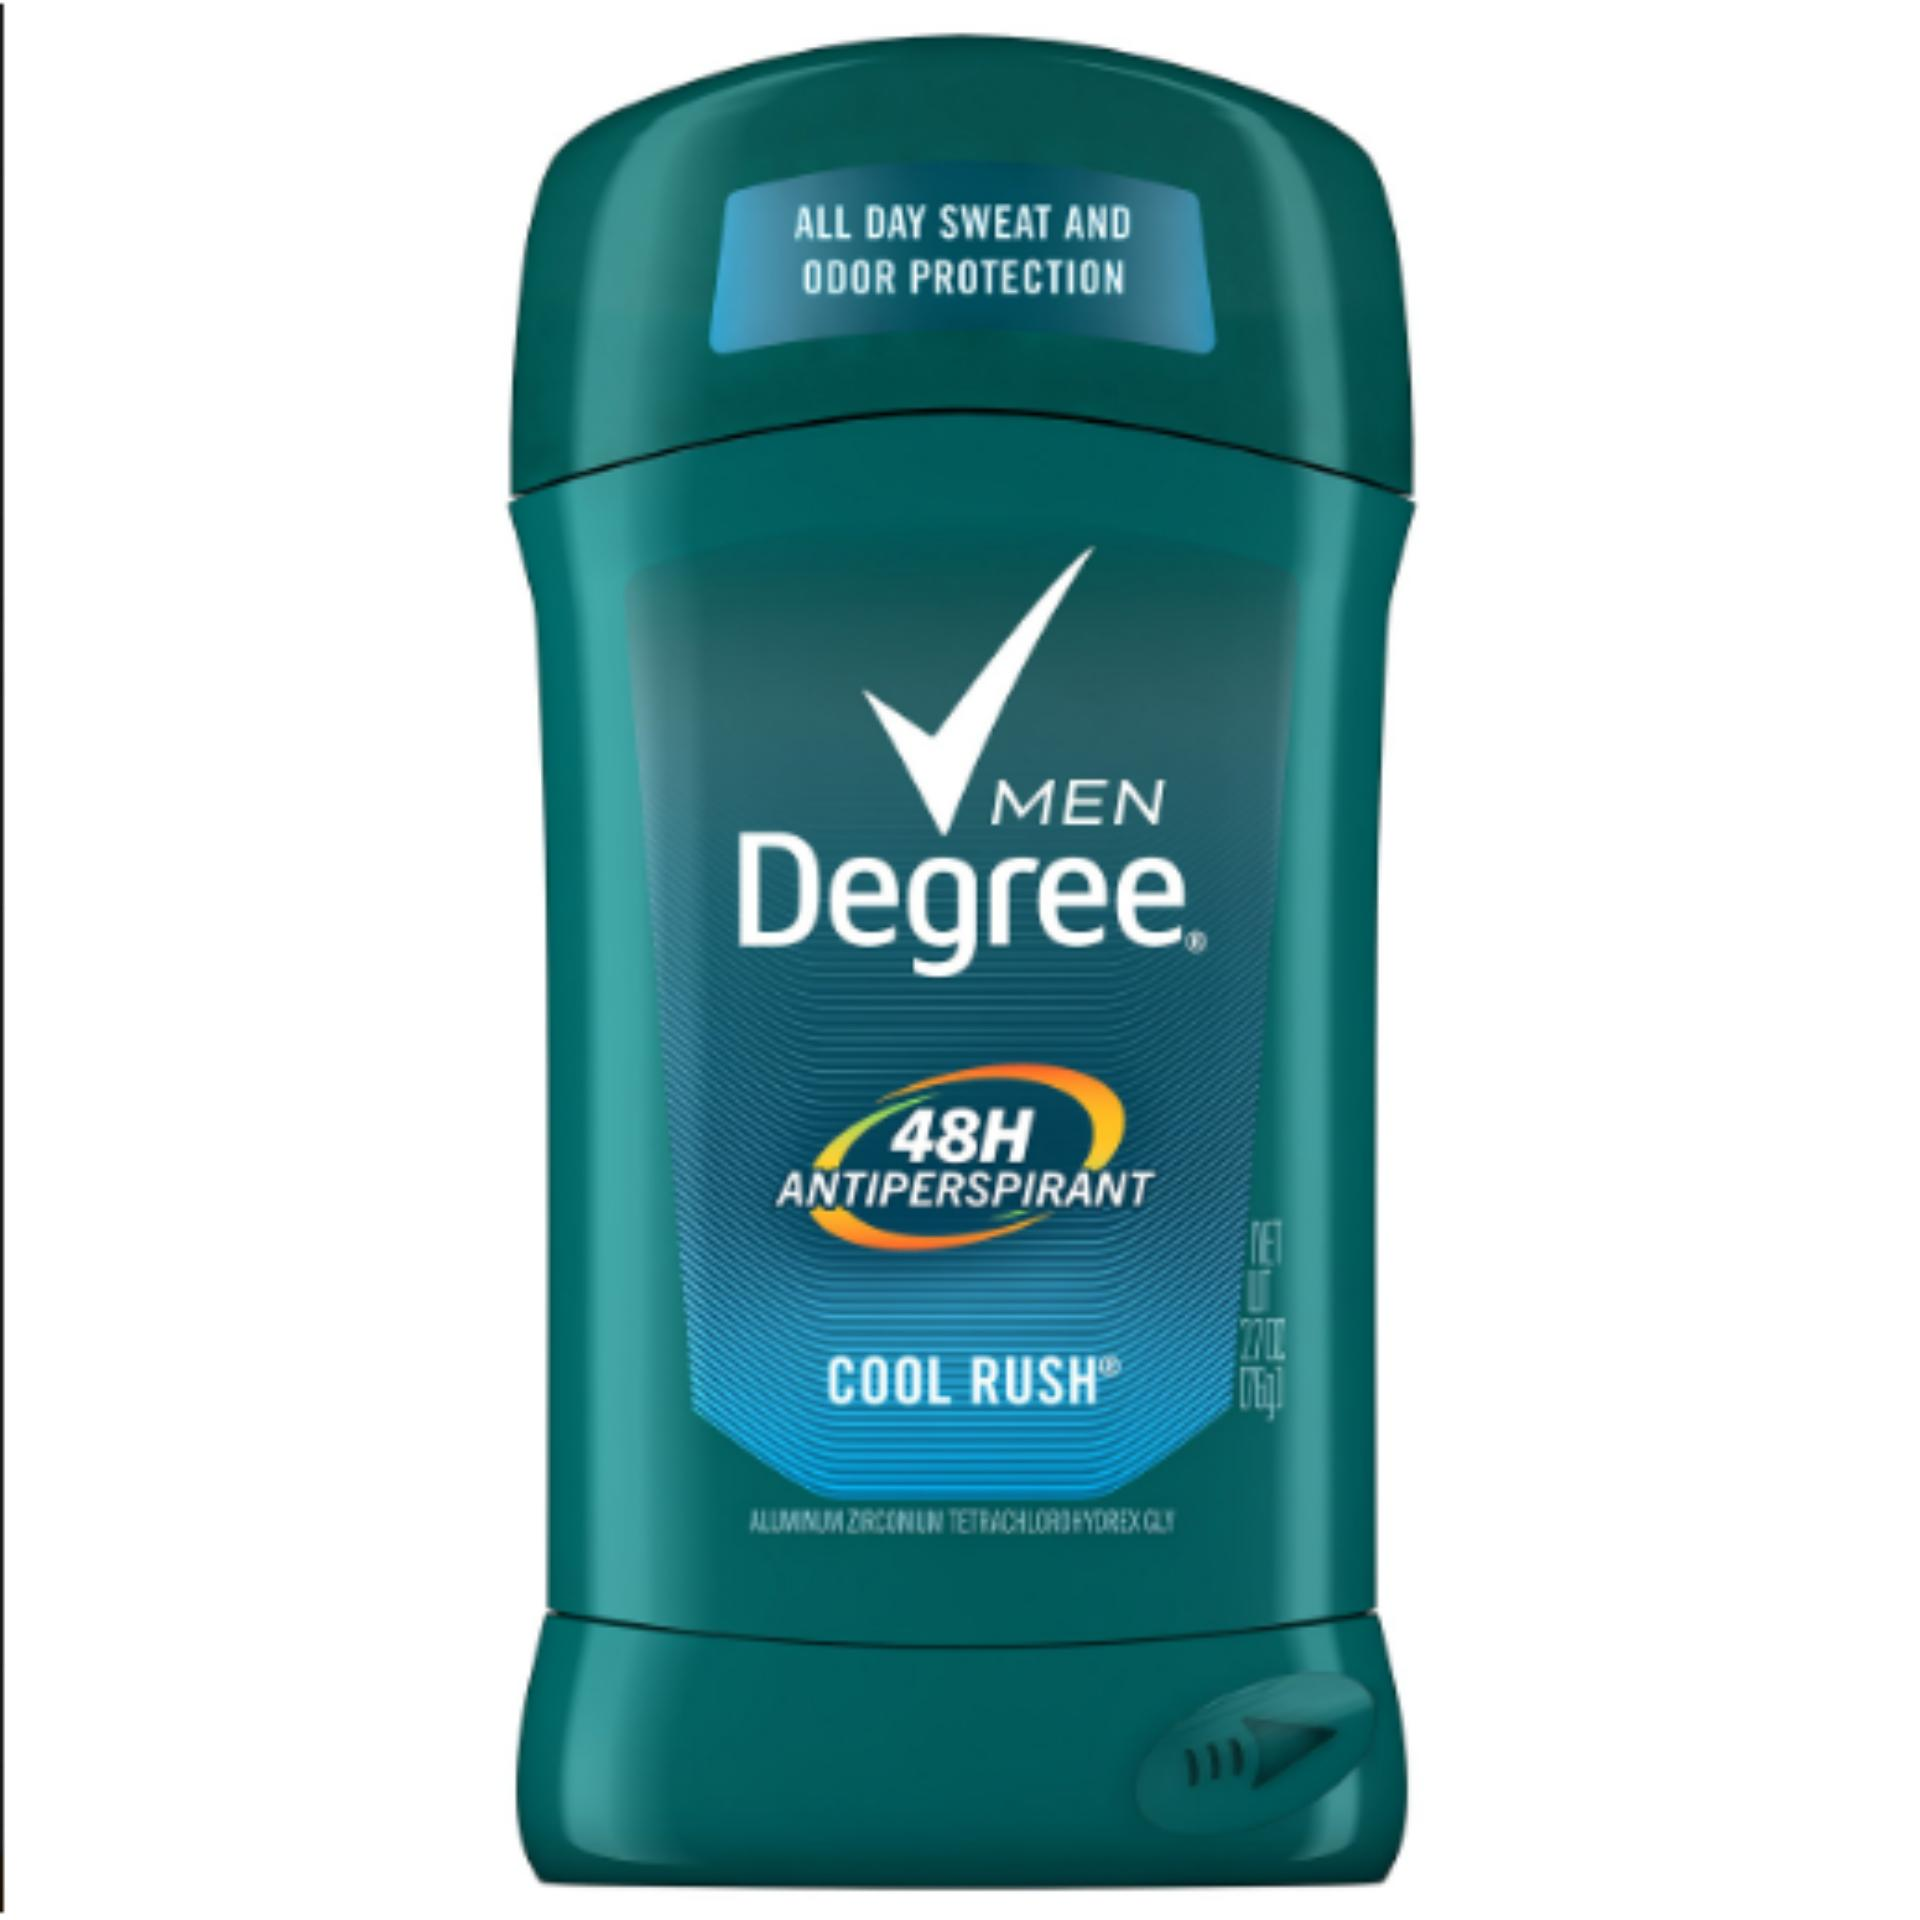 Lăn khử mùi Degree Nam 48h Antiperspirant Cool Rush 76g